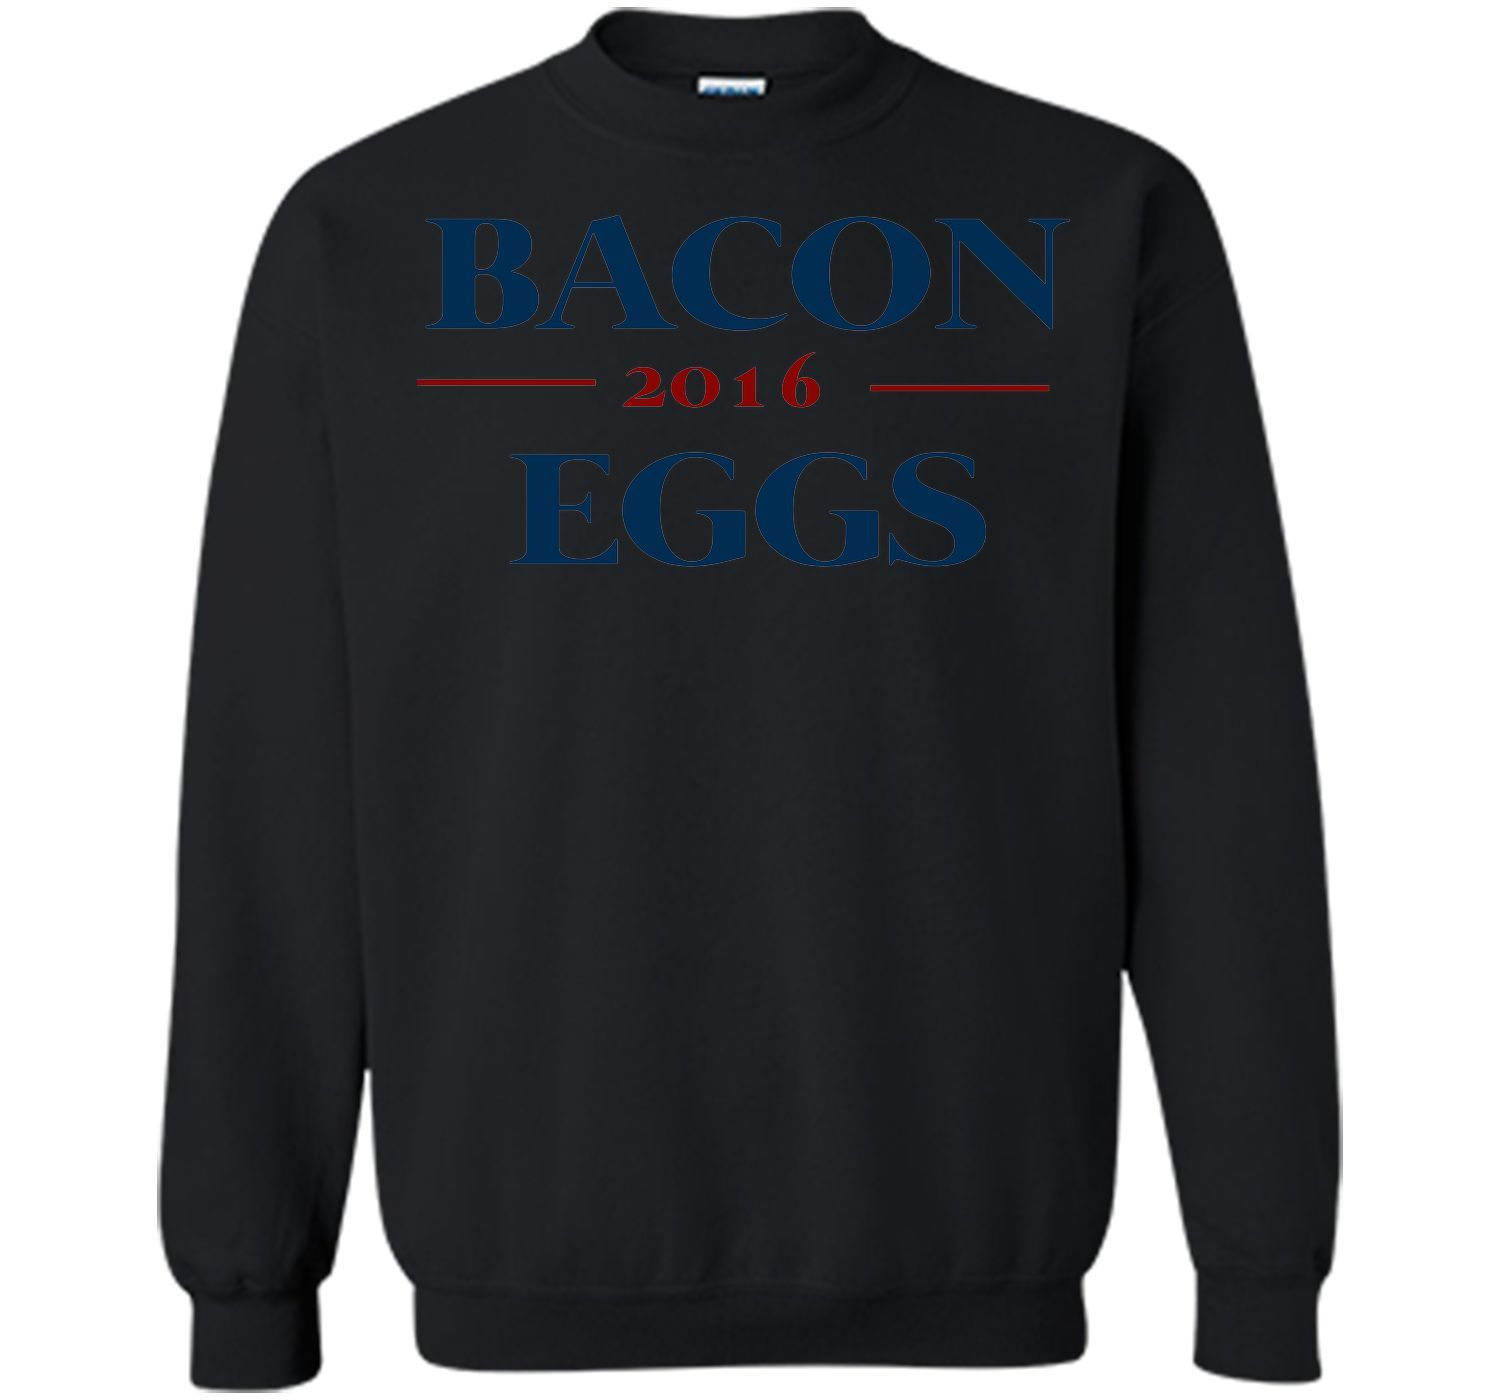 Bacon Eggs 2016 Presidential Election Funny Shirt T-Shirt